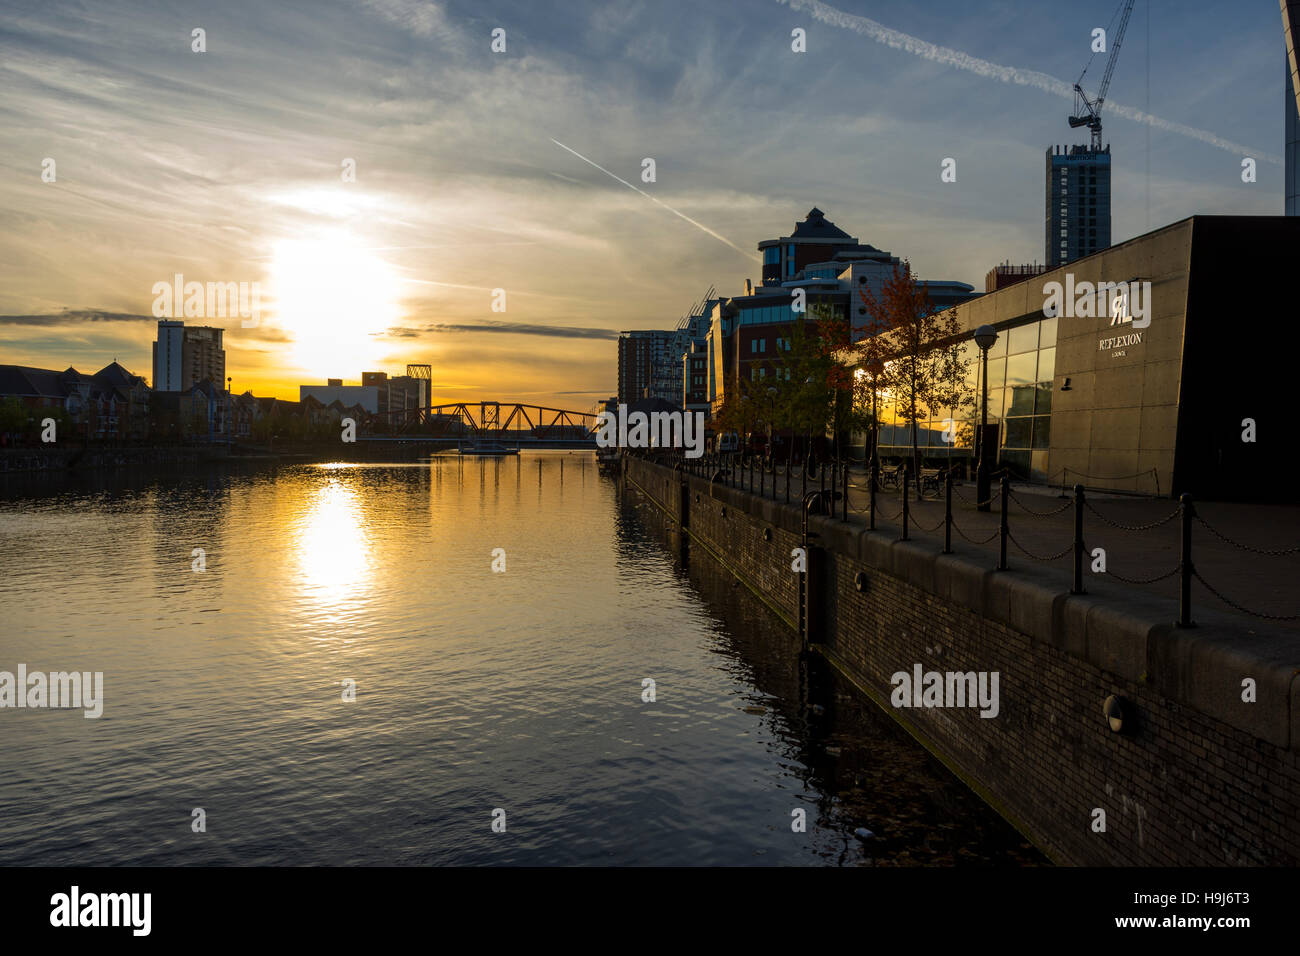 Sunset over Erie Basin, Salford Quays, Manchester, England, UK. On the right is the 'Reflexion' lounge bar. - Stock Image